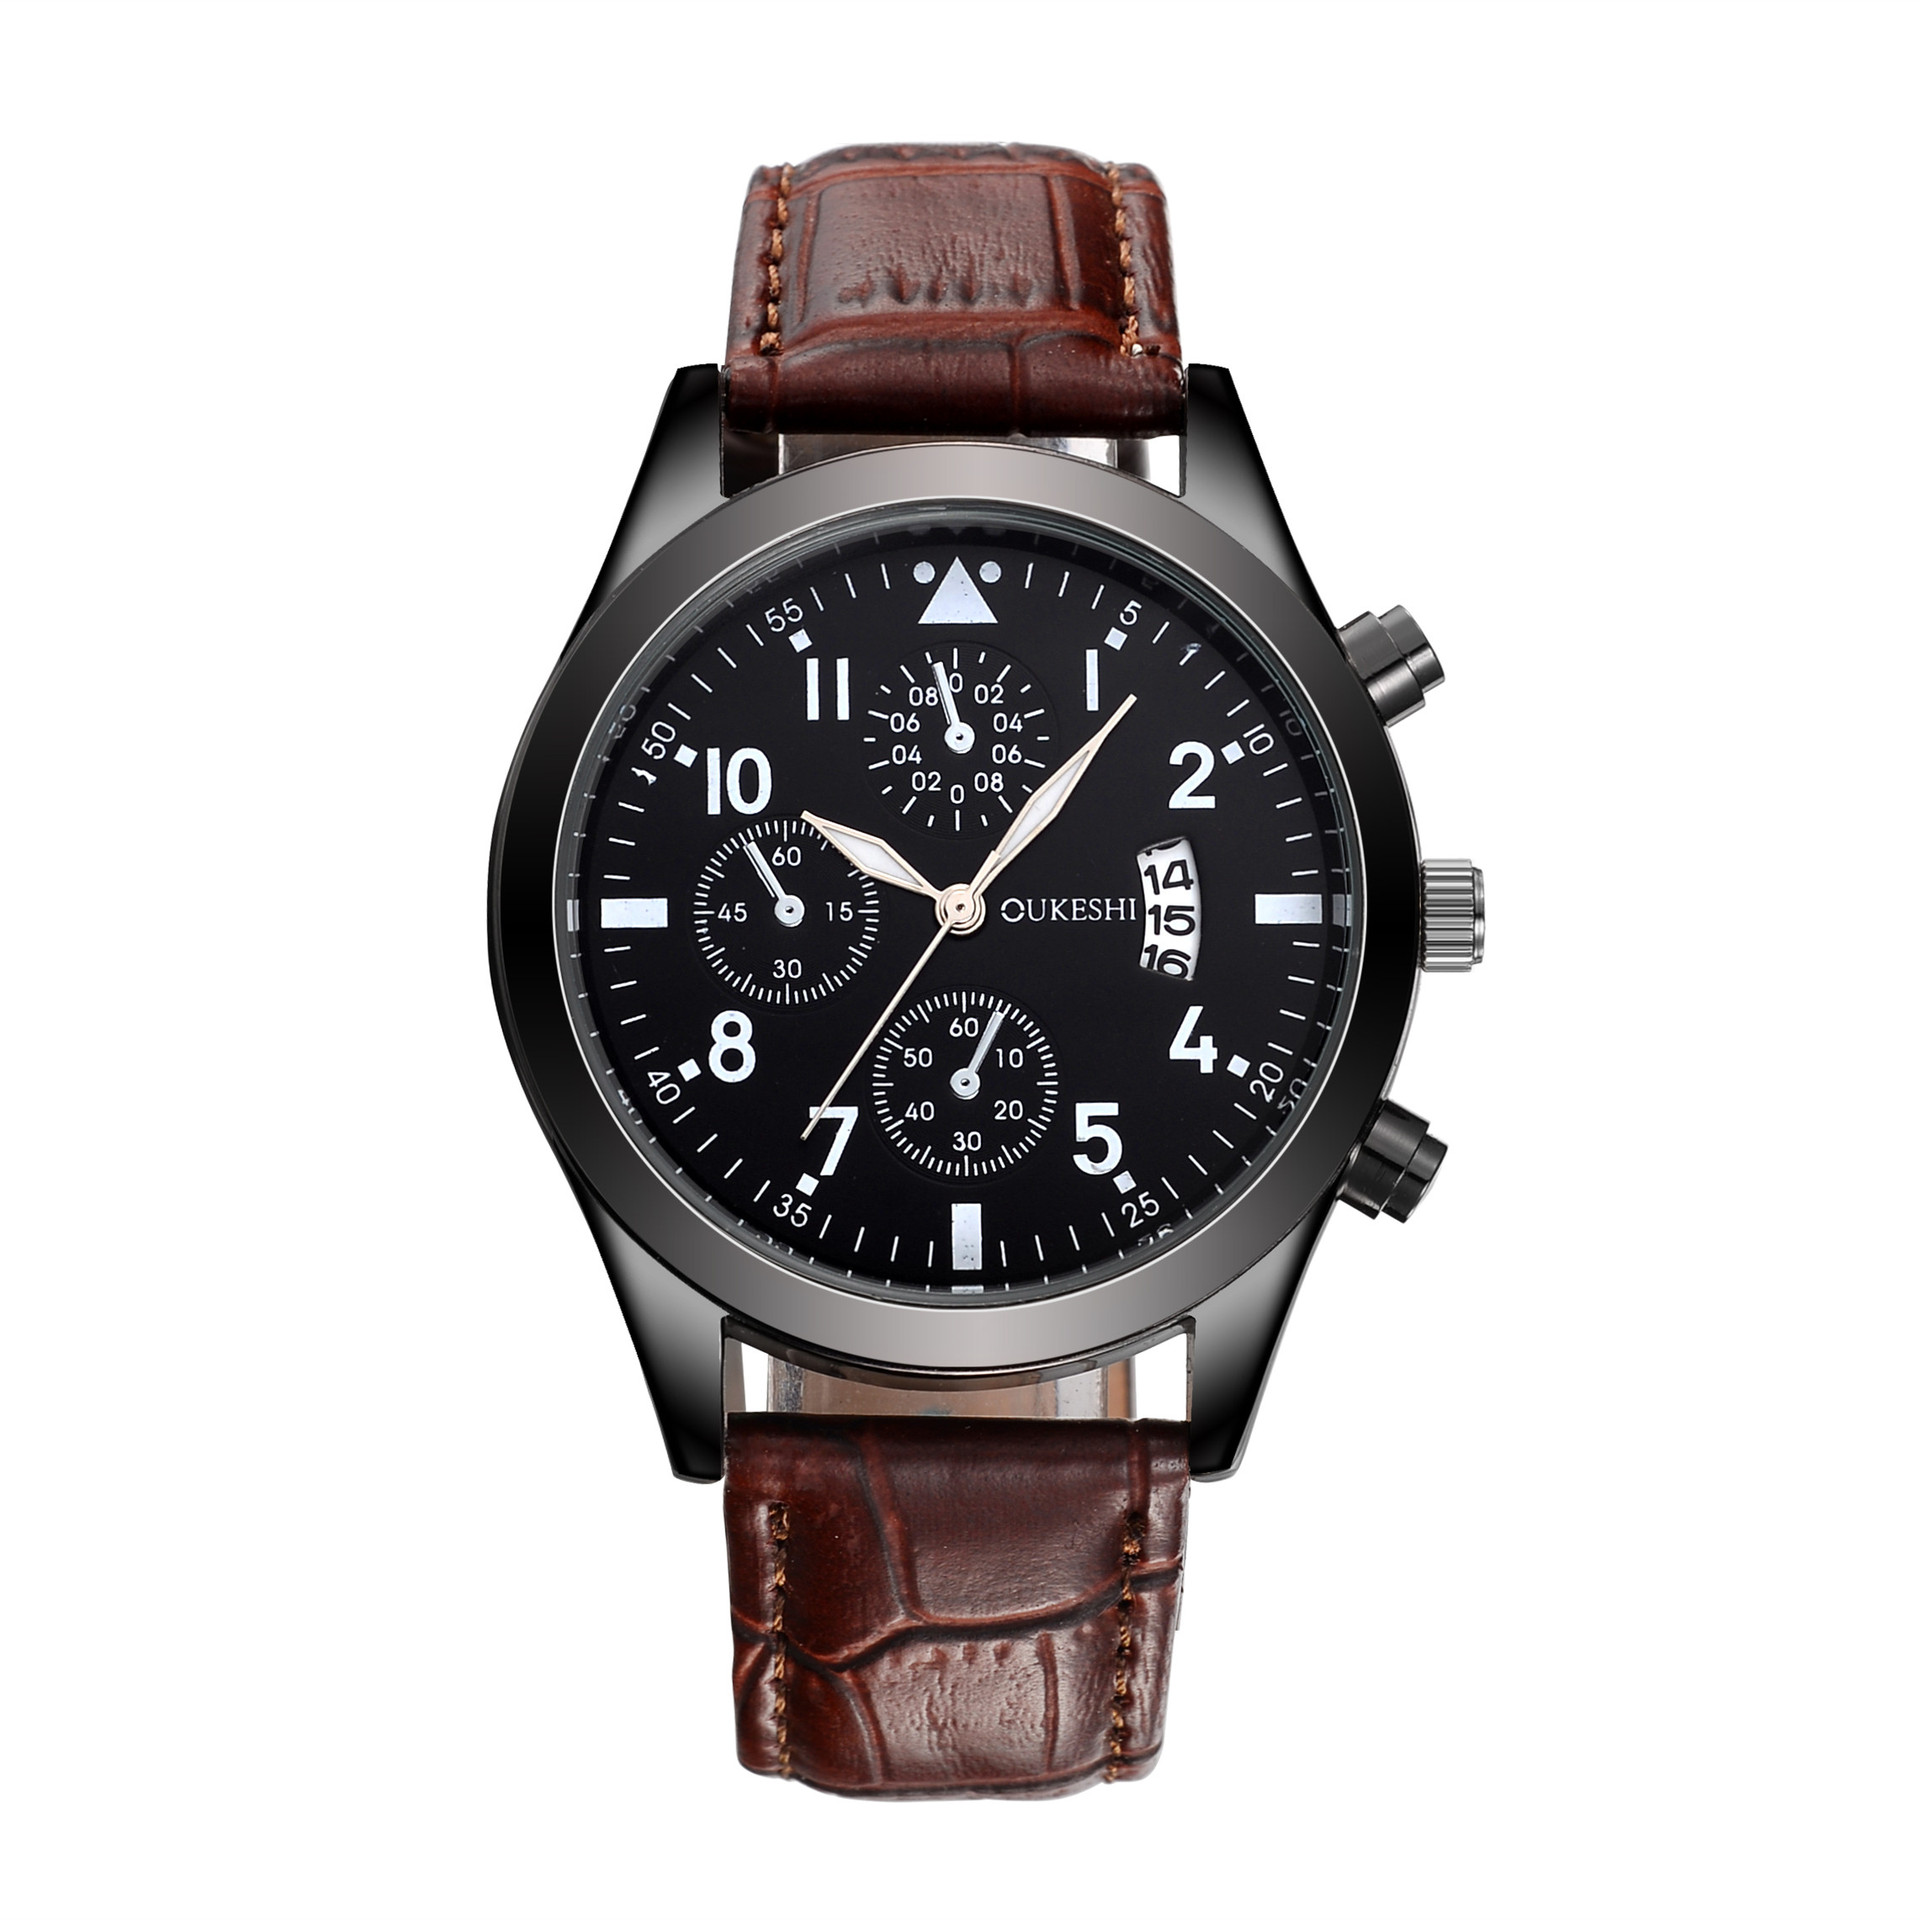 OUKESHI Brand Fashion Calendar Business Men Watches Casual Leather waterproof Quartz Wristwatches Relogio Masculino Clock T12